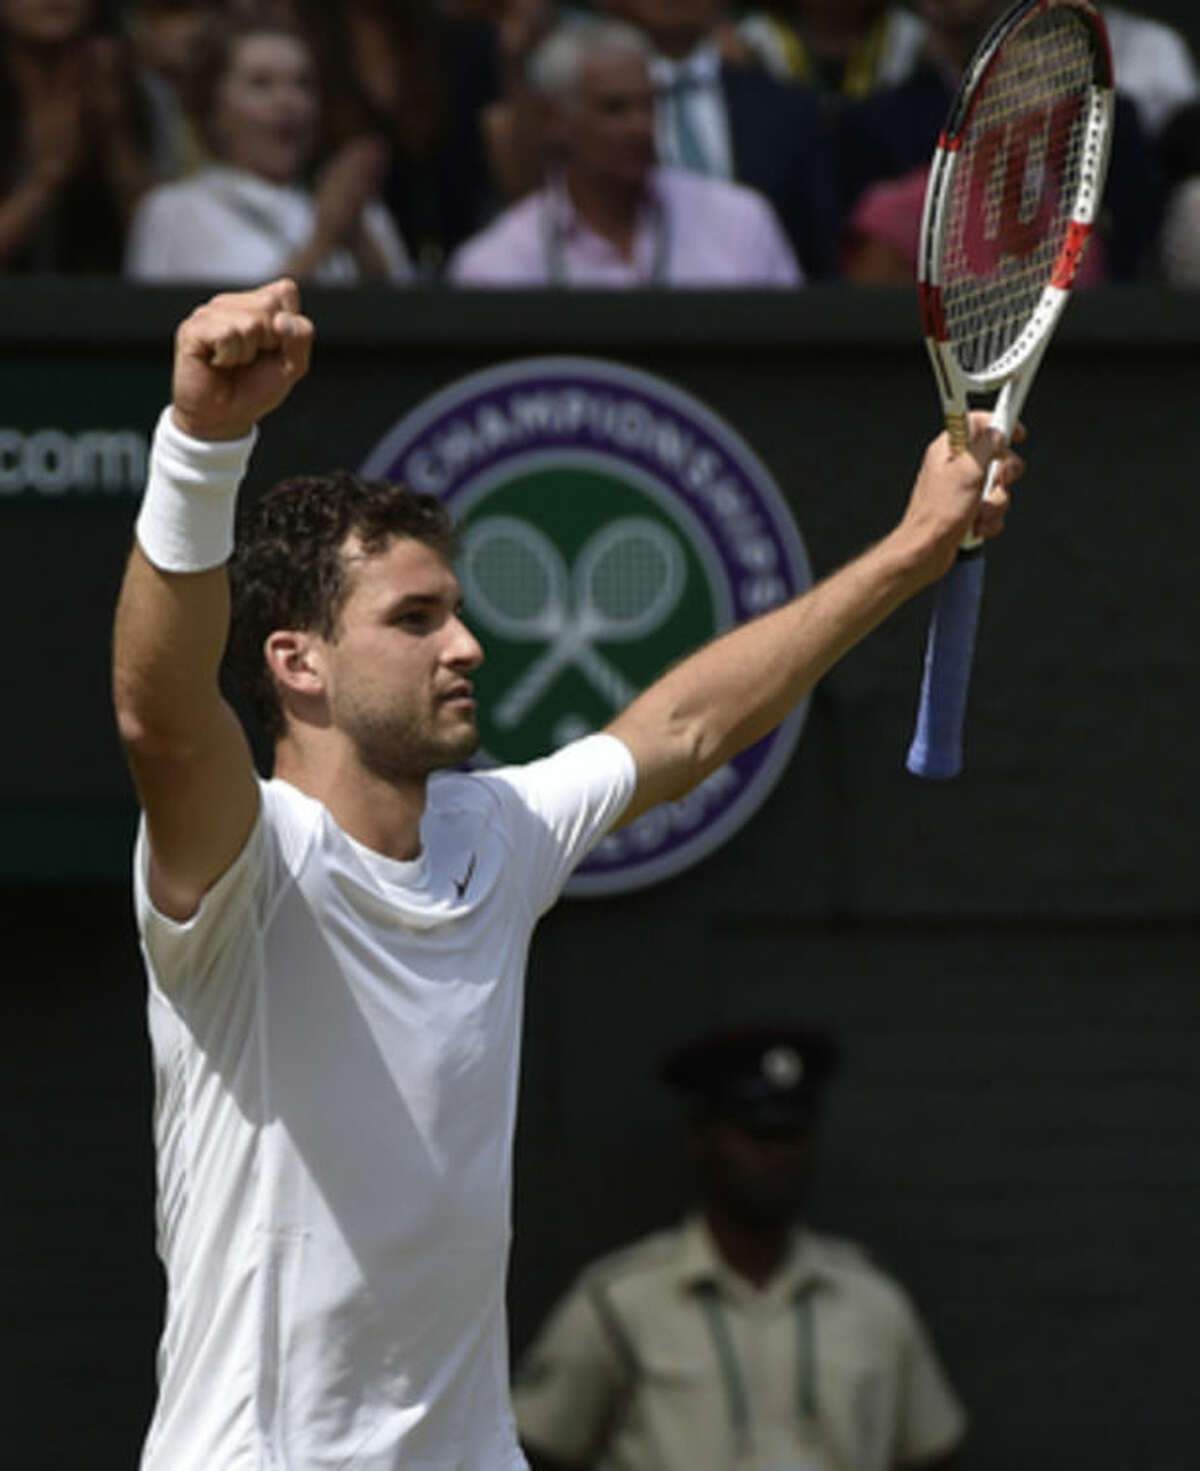 Grigor Dimitrov of Bulgaria celebrates defeating defending champion Andy Murray of Britain in the men's singles quarterfinal match at the All England Lawn Tennis Championships in Wimbledon, London, Wednesday July 2, 2014. (AP Photo/Toby Melville, Pool)